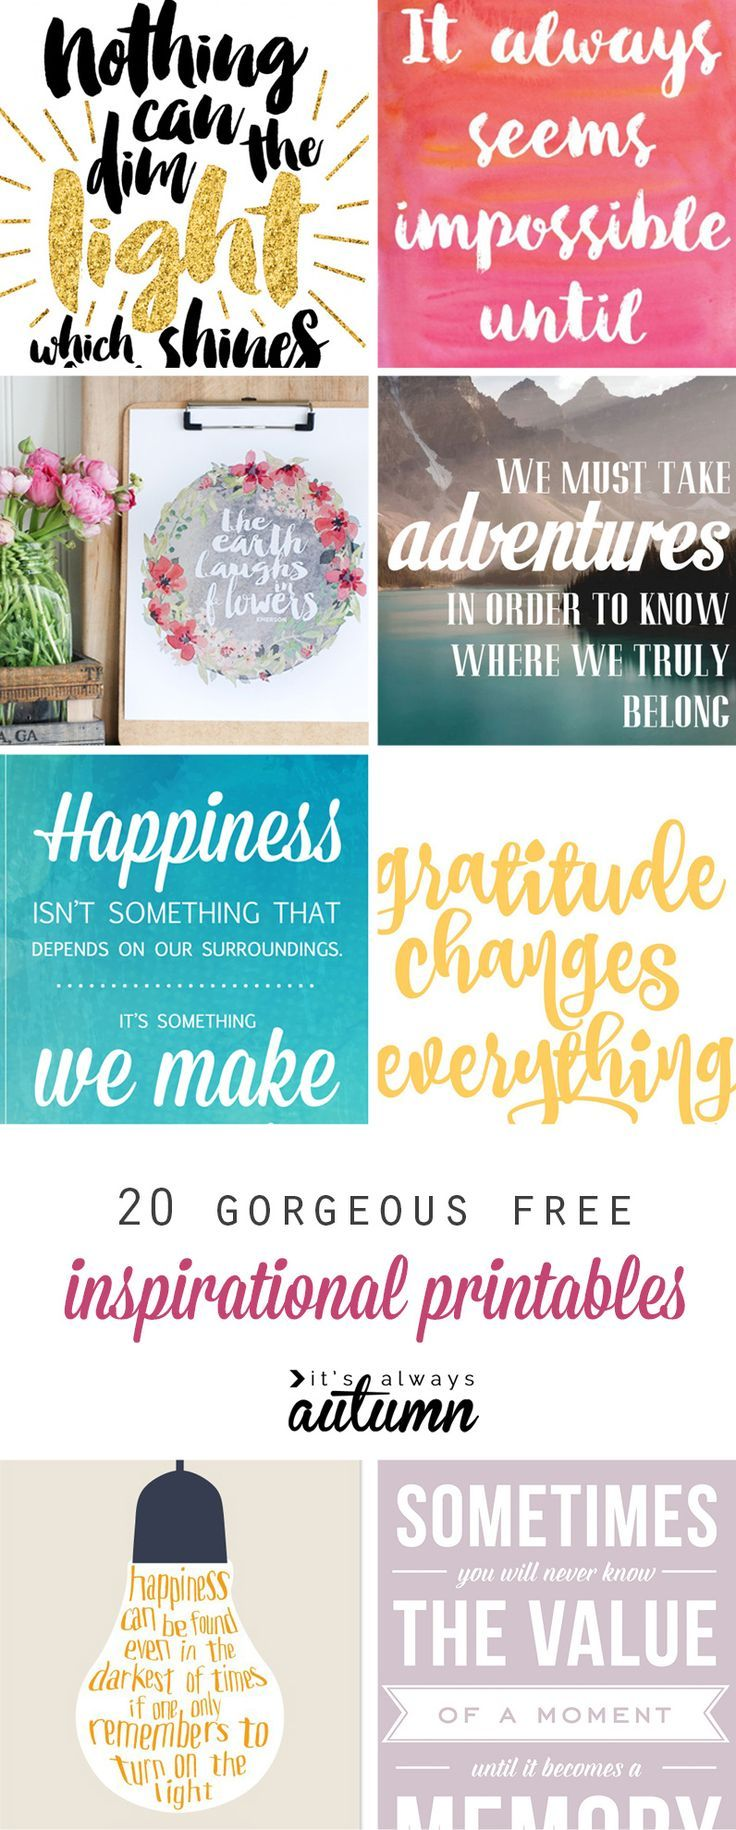 20 Gorgeous Modern Free Inspirational Quote Printables It S Always Autumn Printable Inspirational Quotes Free Inspirational Quotes Inspirational Printables